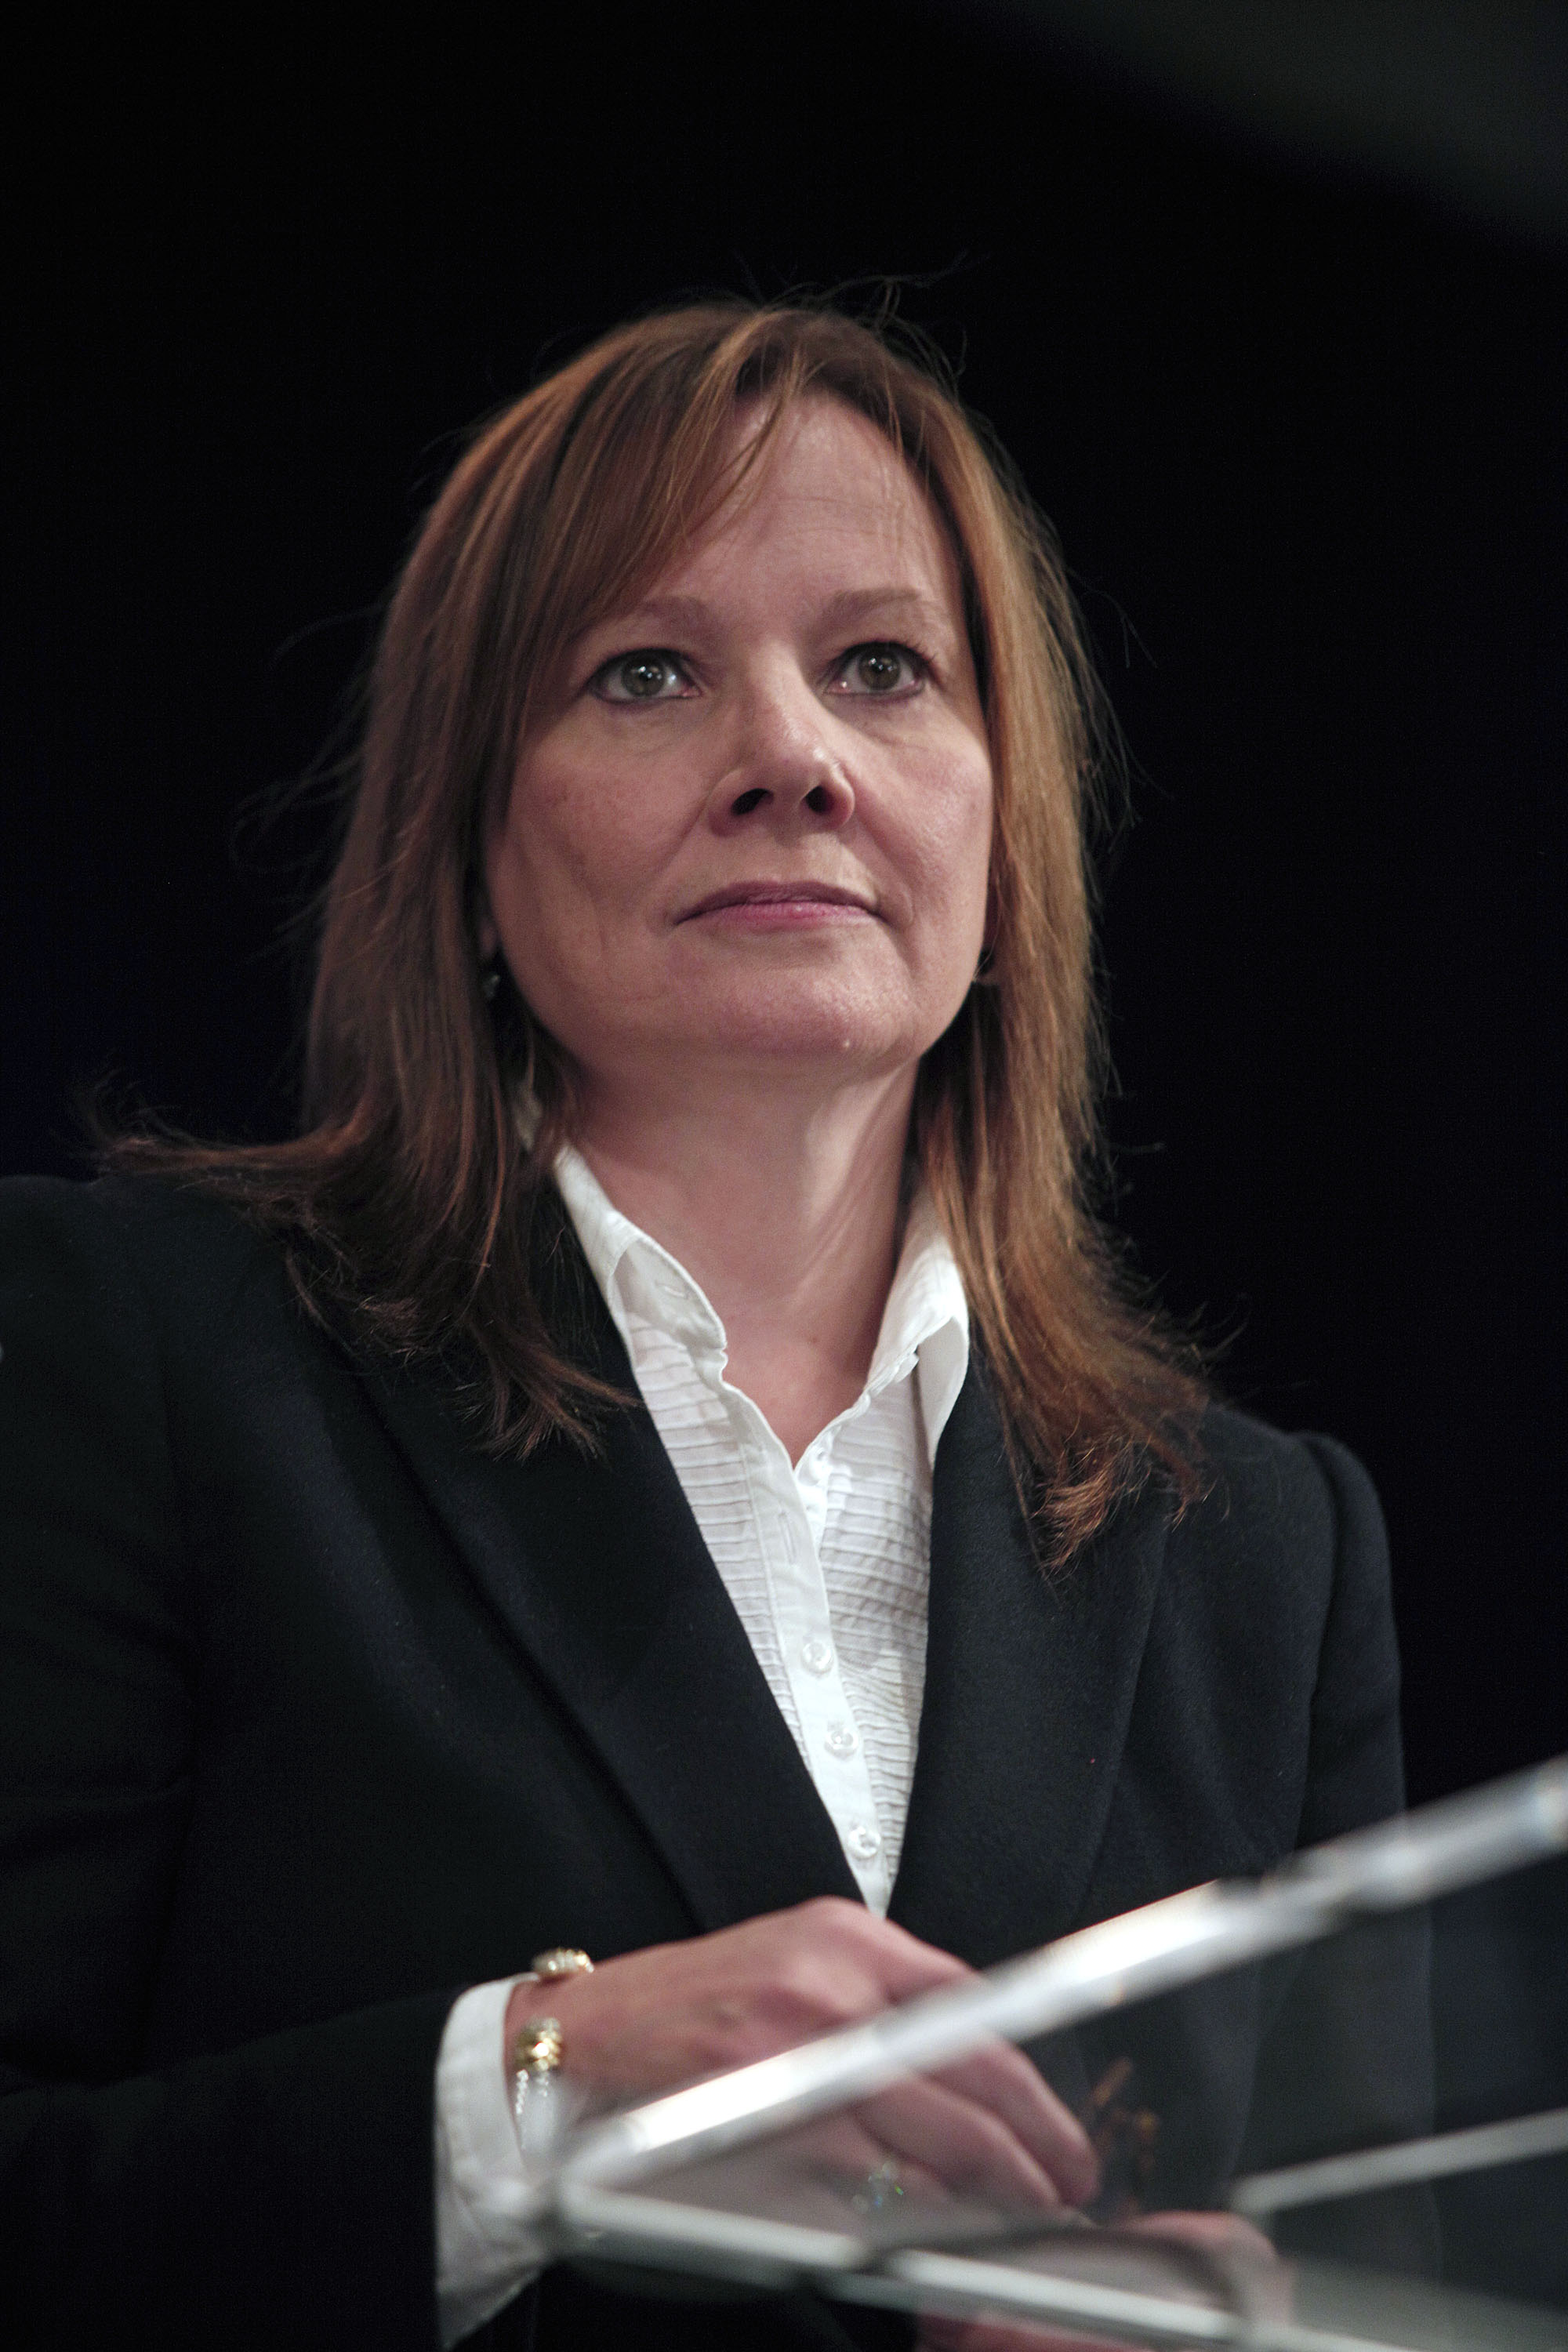 General Motors Chief Executive Officer Mary Barra address the Detroit Economic Club October 28, 2014 in Detroit, Michigan. Barra announced that GM will be investing $540 million in its plants in Michigan. $240 million of that will be invested in the company's Warren Transmission Plant, allowing them to produce the transmissions for the next-generation Chevrolet Volt in Michigan, as opposed to in Mexico.